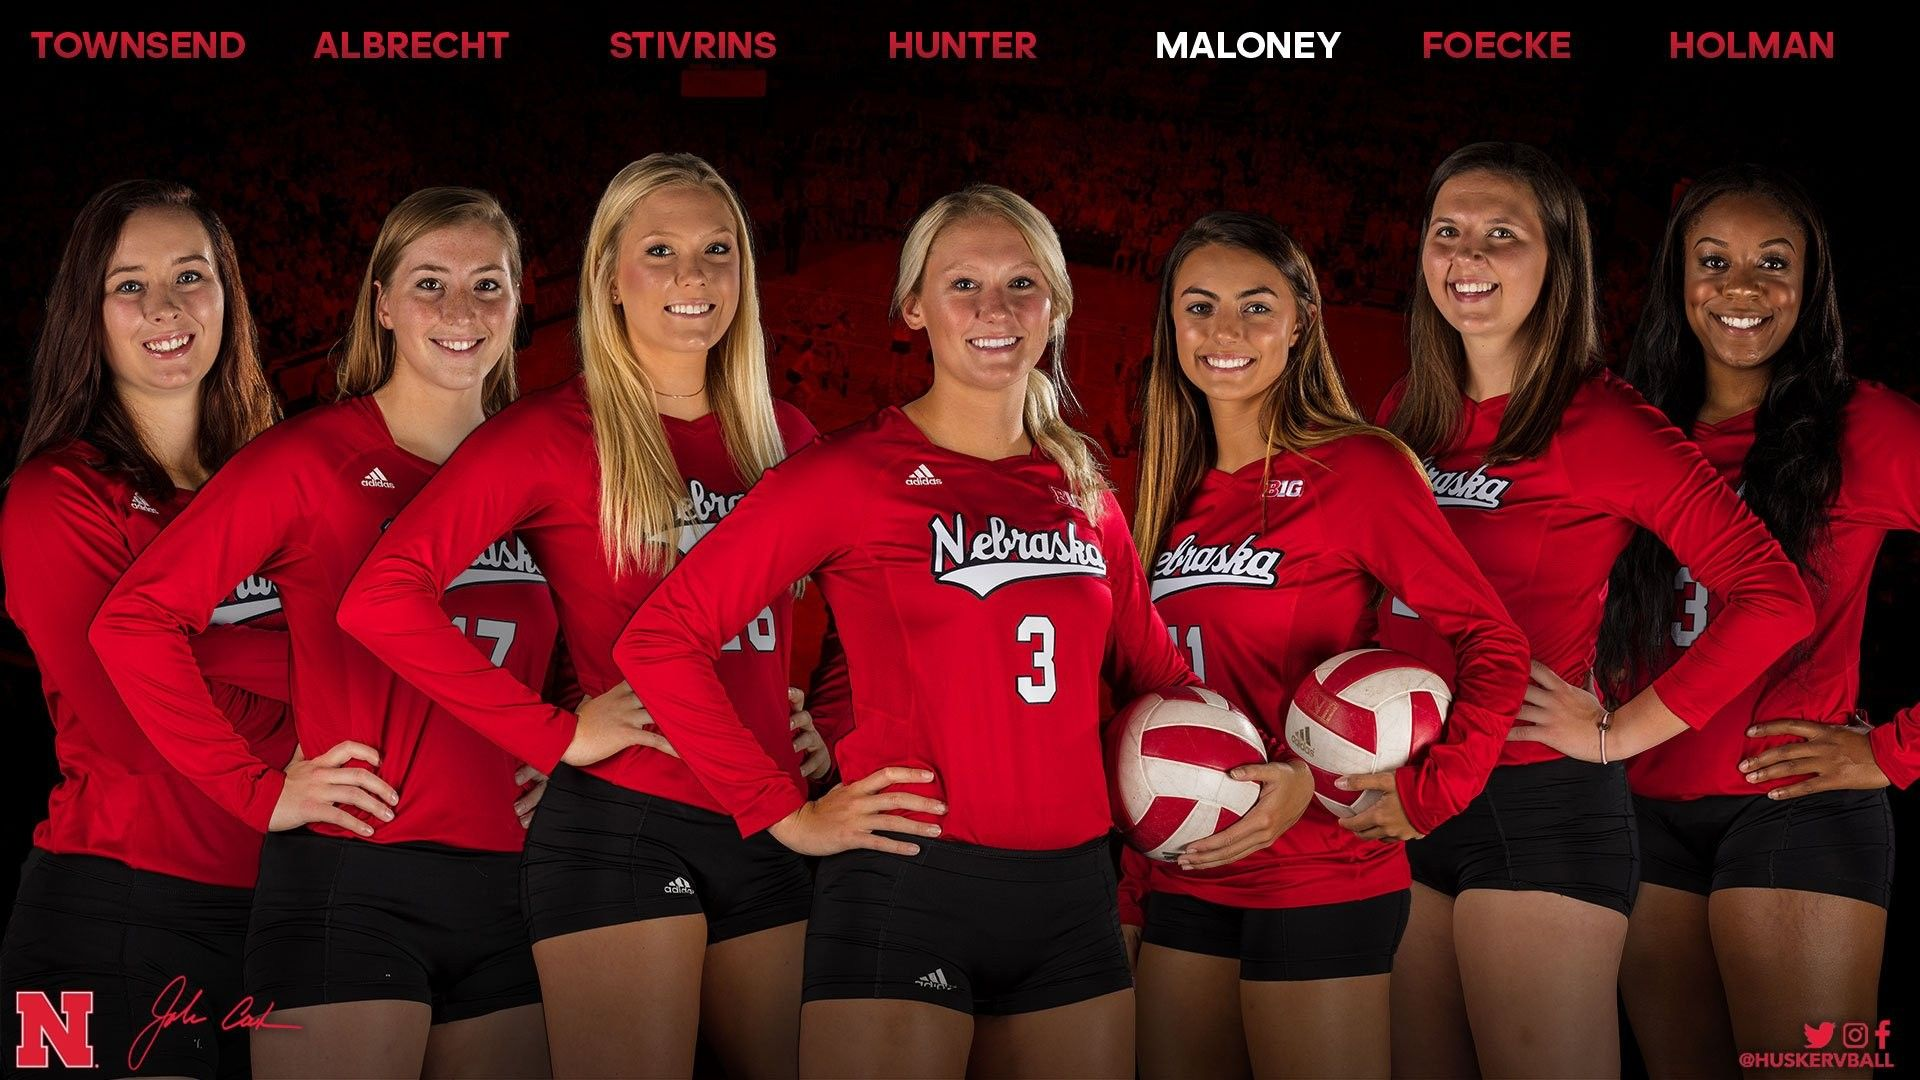 Pin By Tim On Huskers Such Volleyball Inspiration Volleyball Outfits Cornhuskers